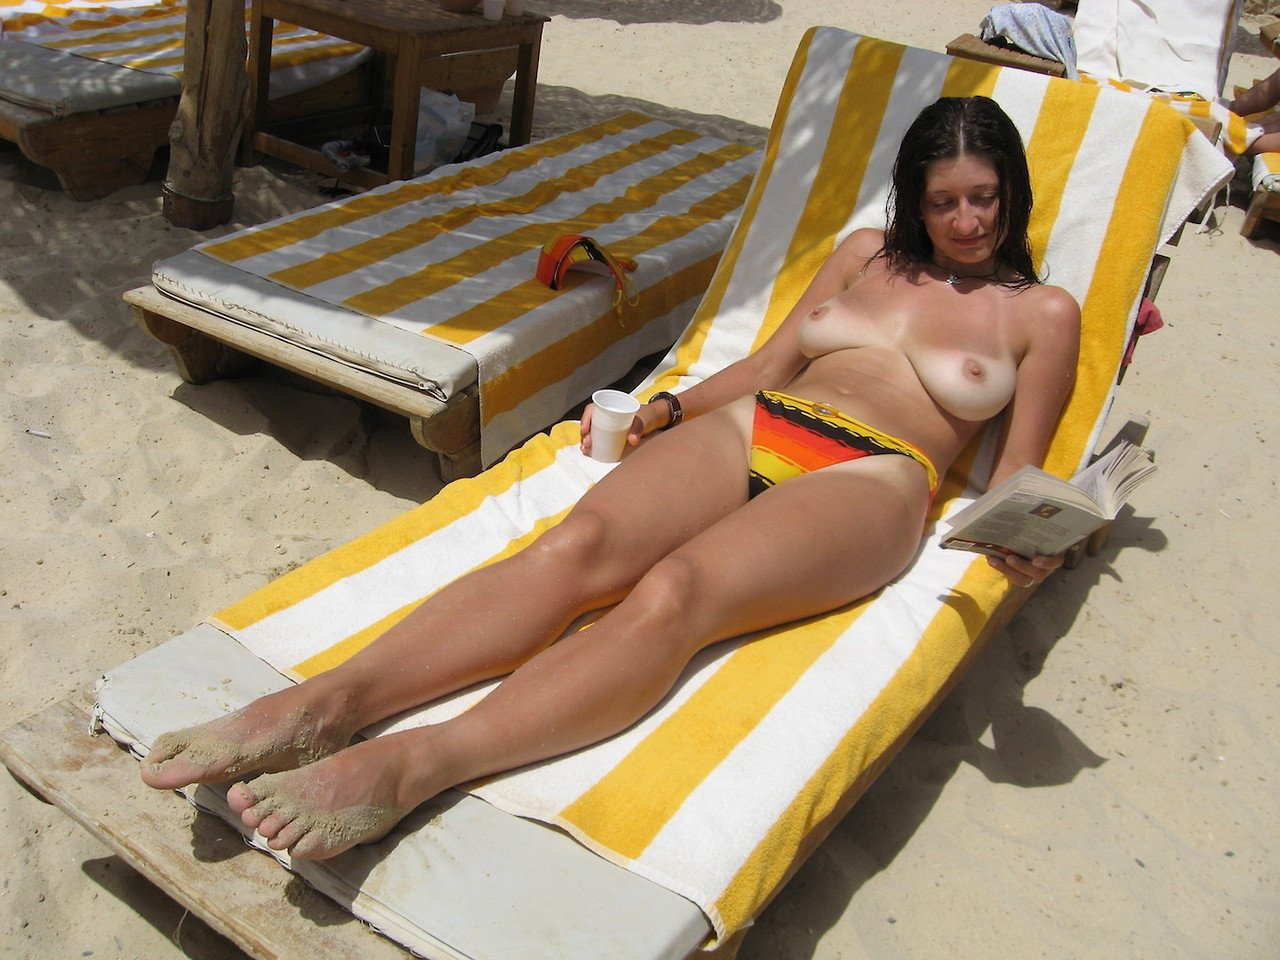 Free naughty adult interracial chat sites mature and young group sex